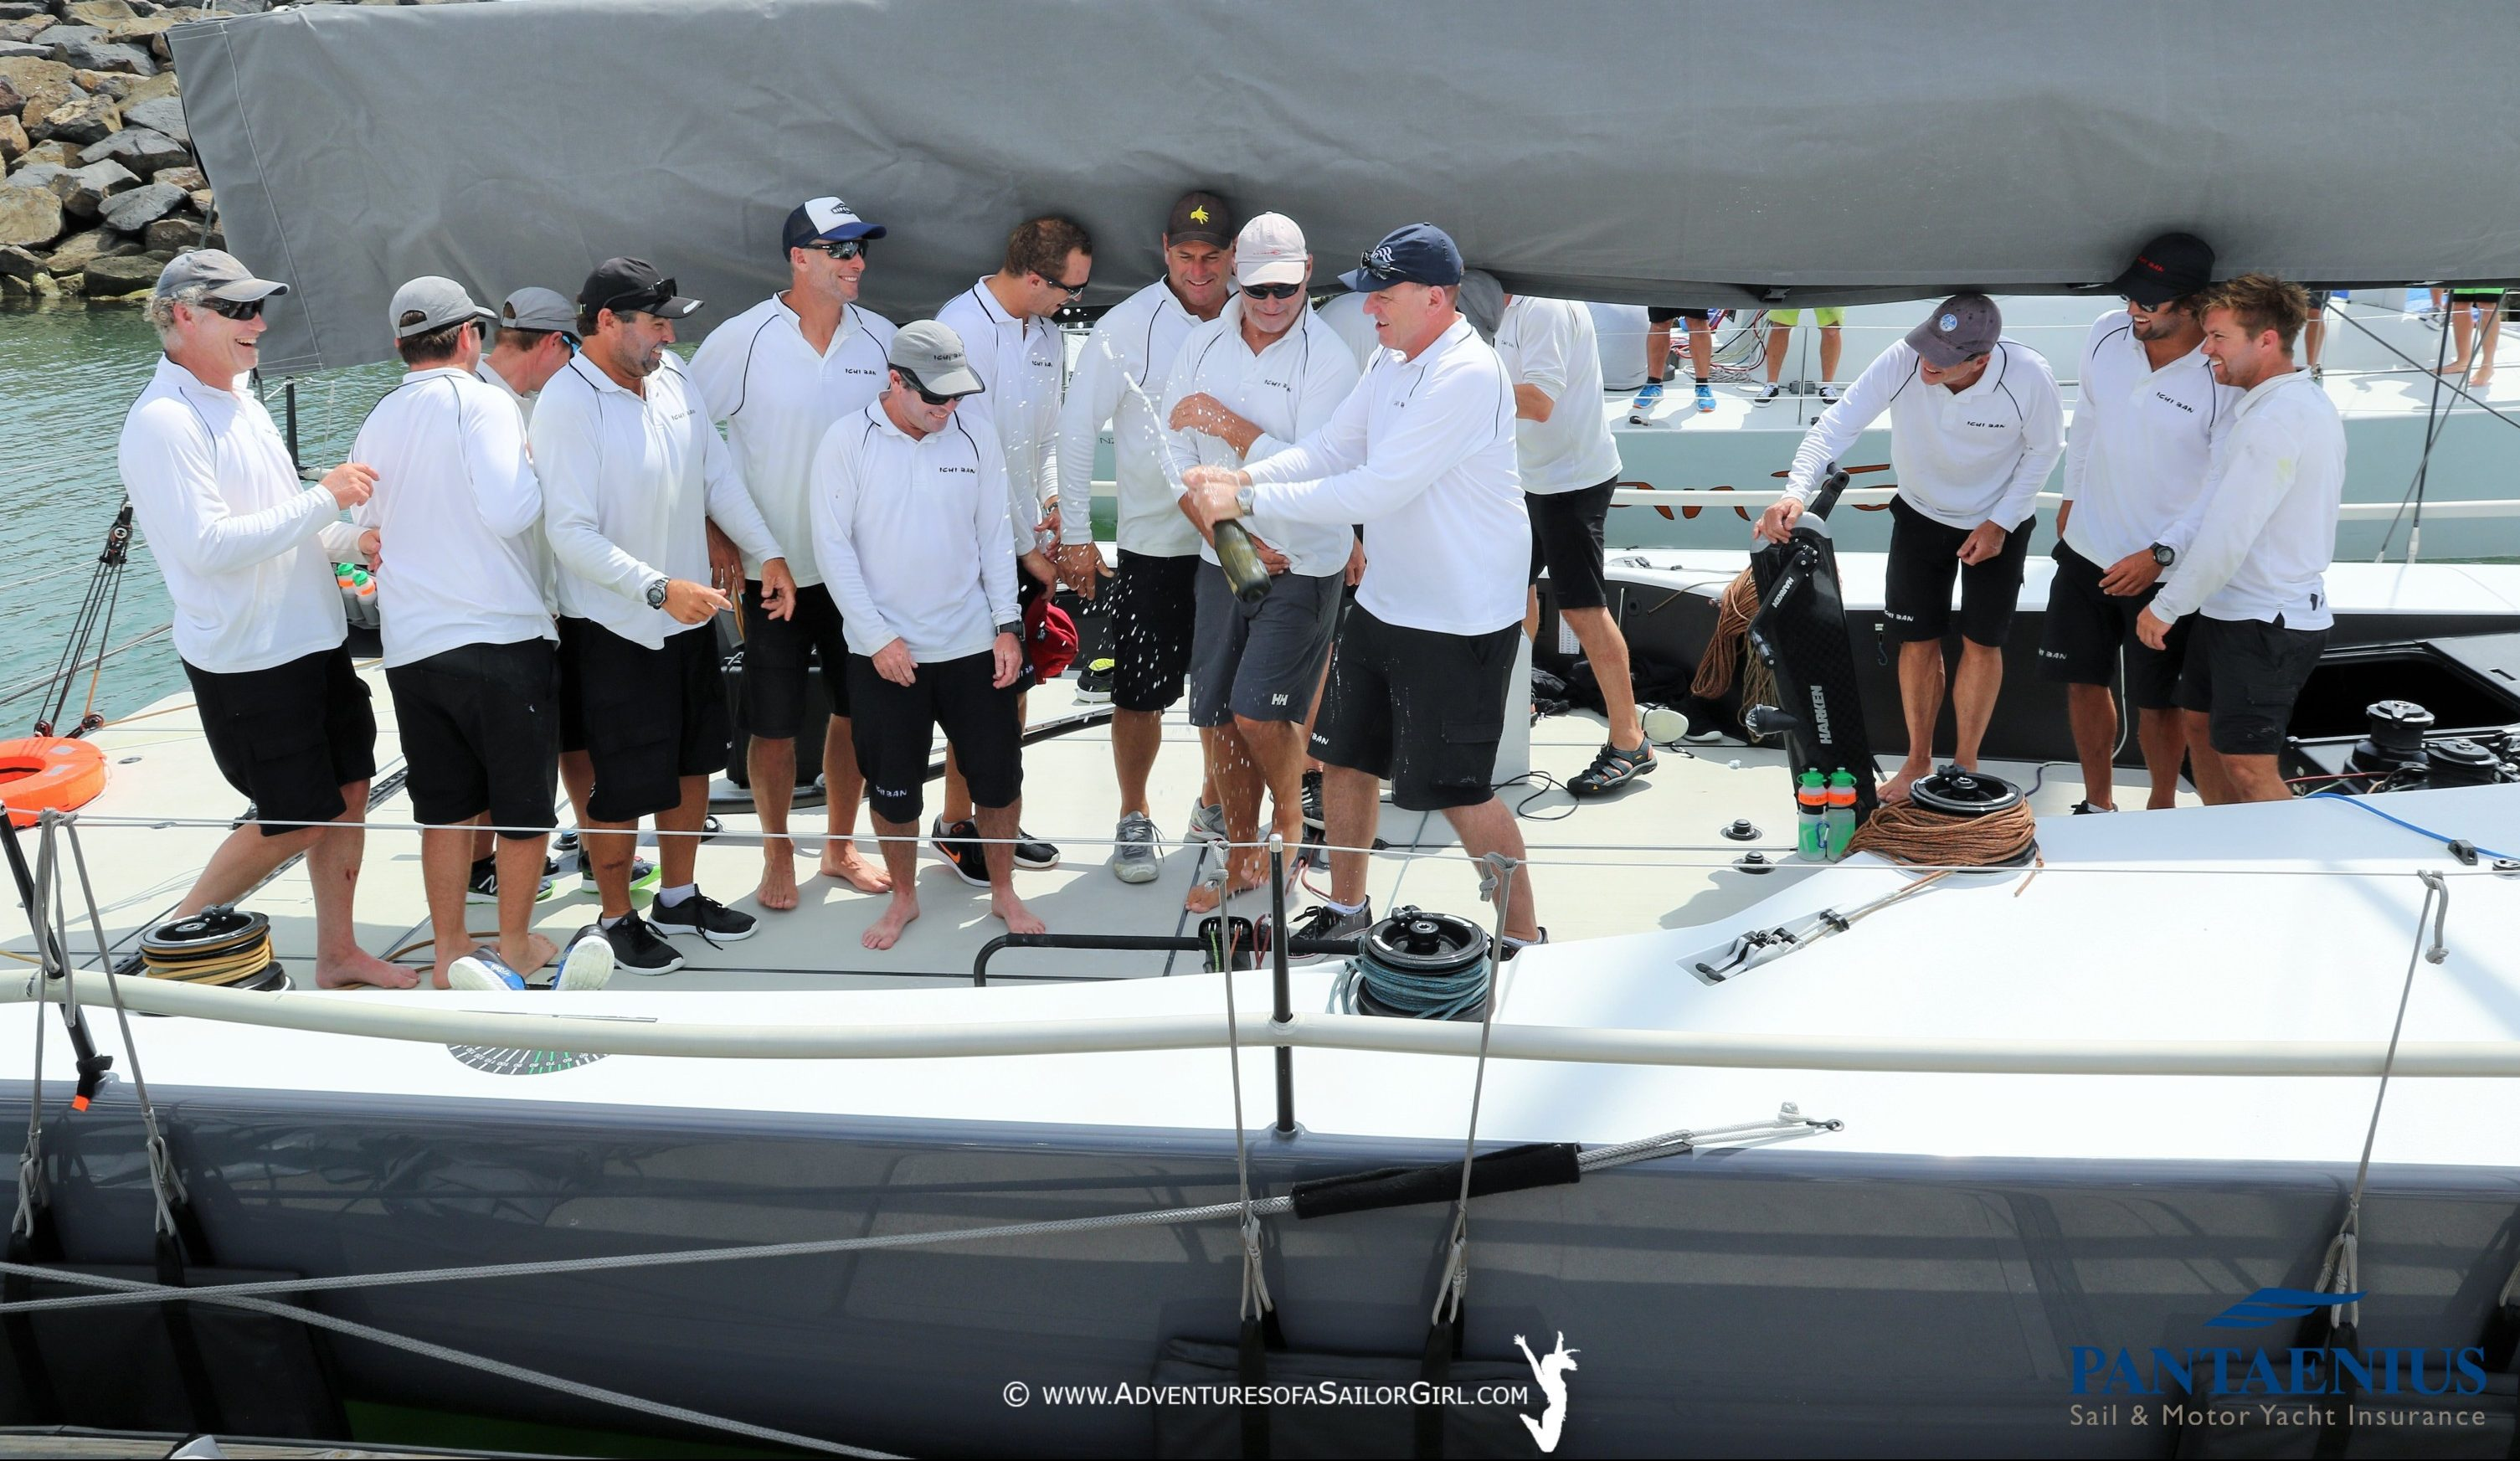 Ichi Ban cleans up division one | Australian Yachting Championships